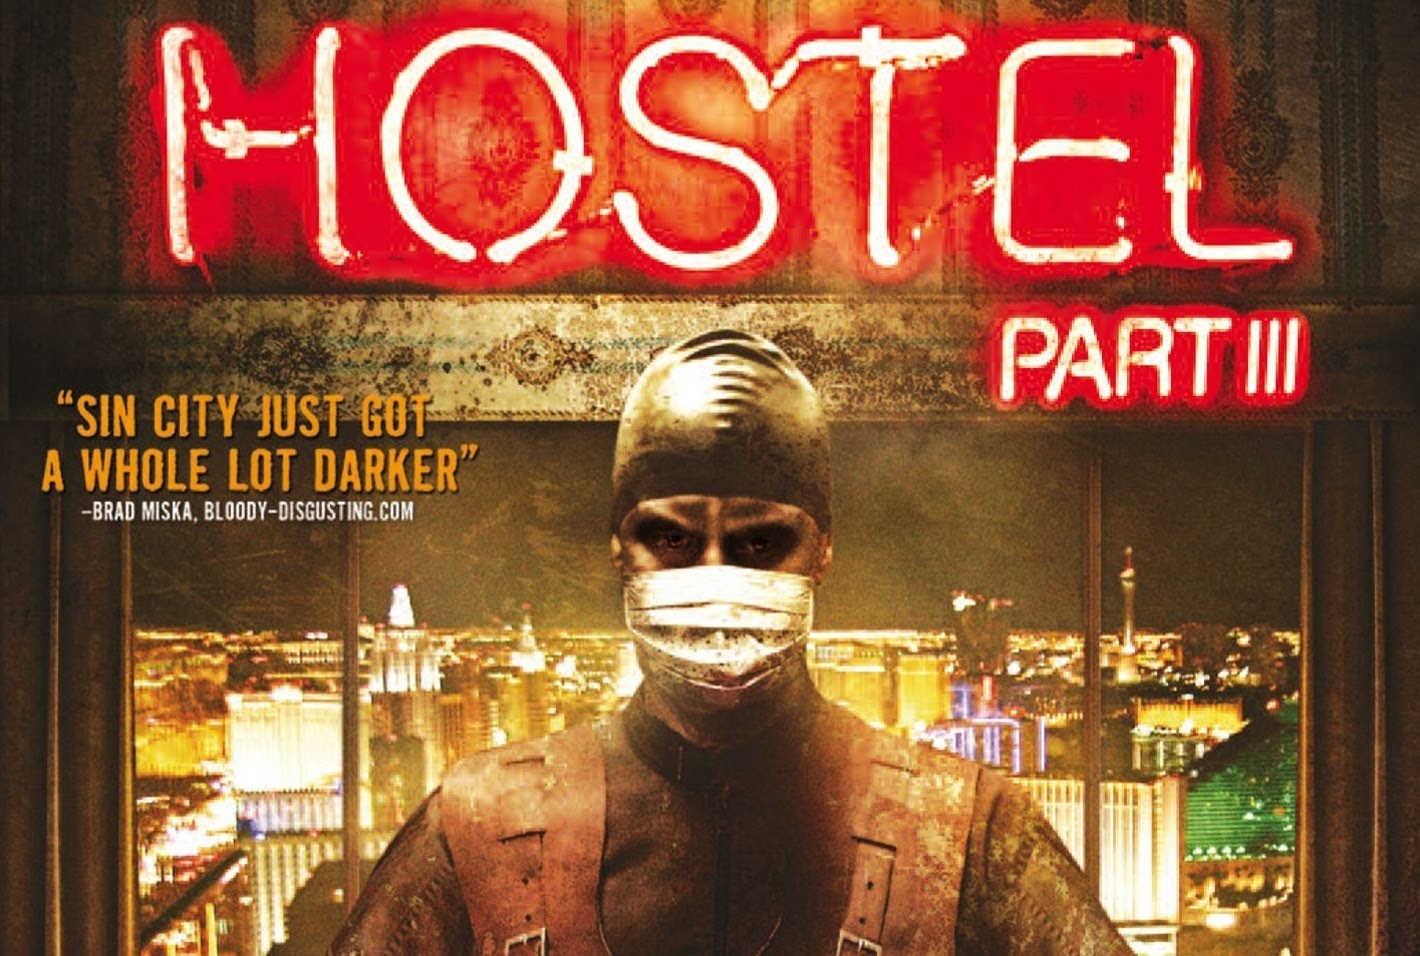 Hostel: part iii teaser trailer (2011).